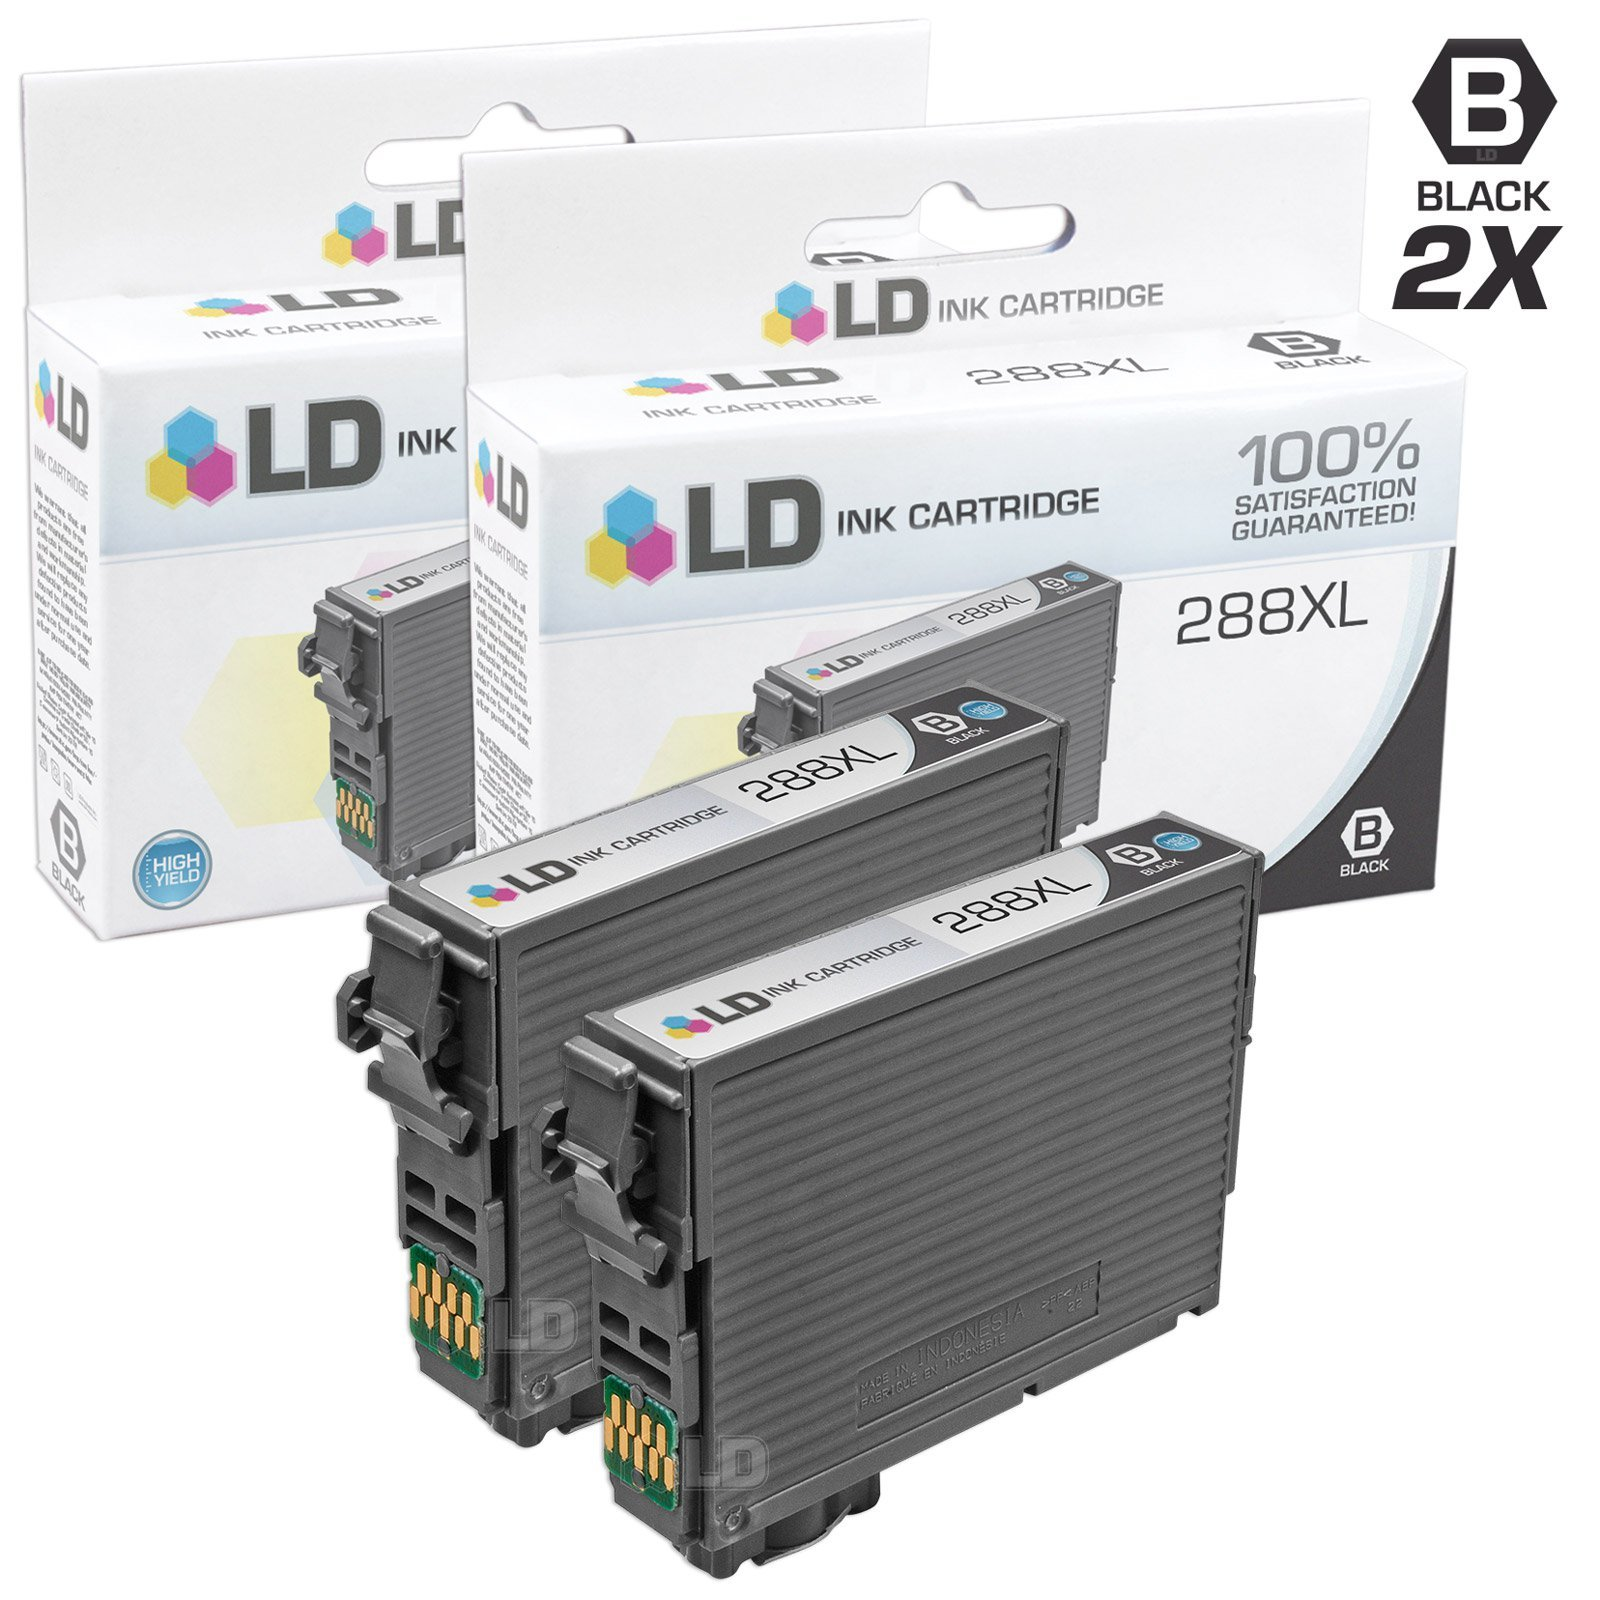 LD Remanufactured Ink Cartridge Replacements for Epson 288XL High Yield (Black, 2-Pack)